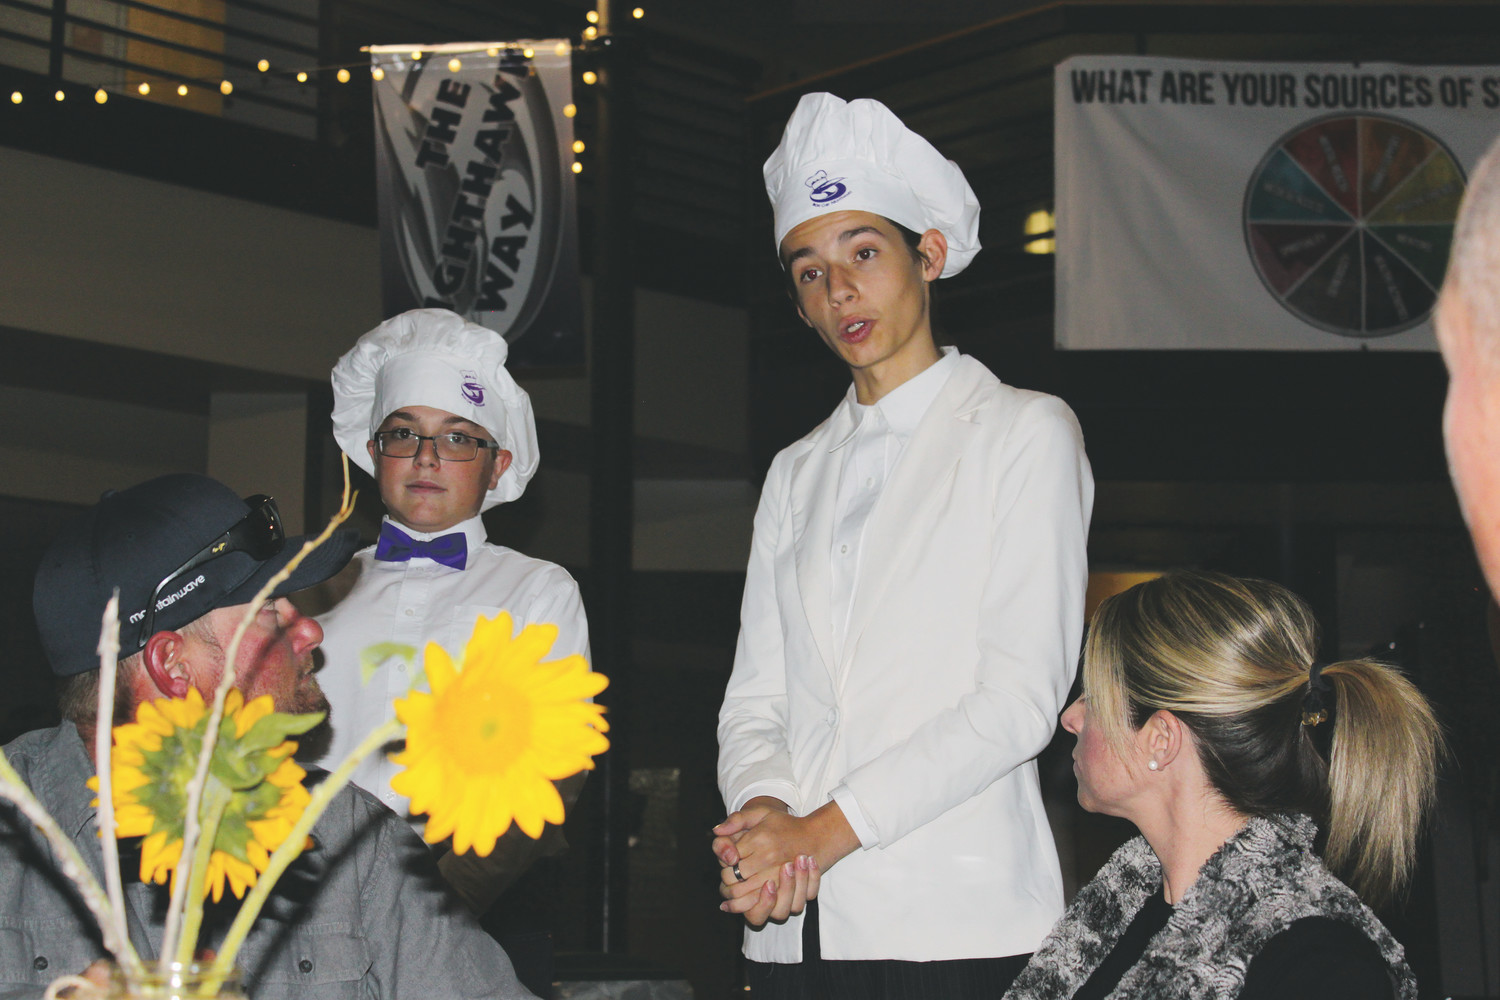 Austin Coudeyras, L, watches on as Brenden Bernsdorf recites the evening specials to attendees at the RHMS dinner.